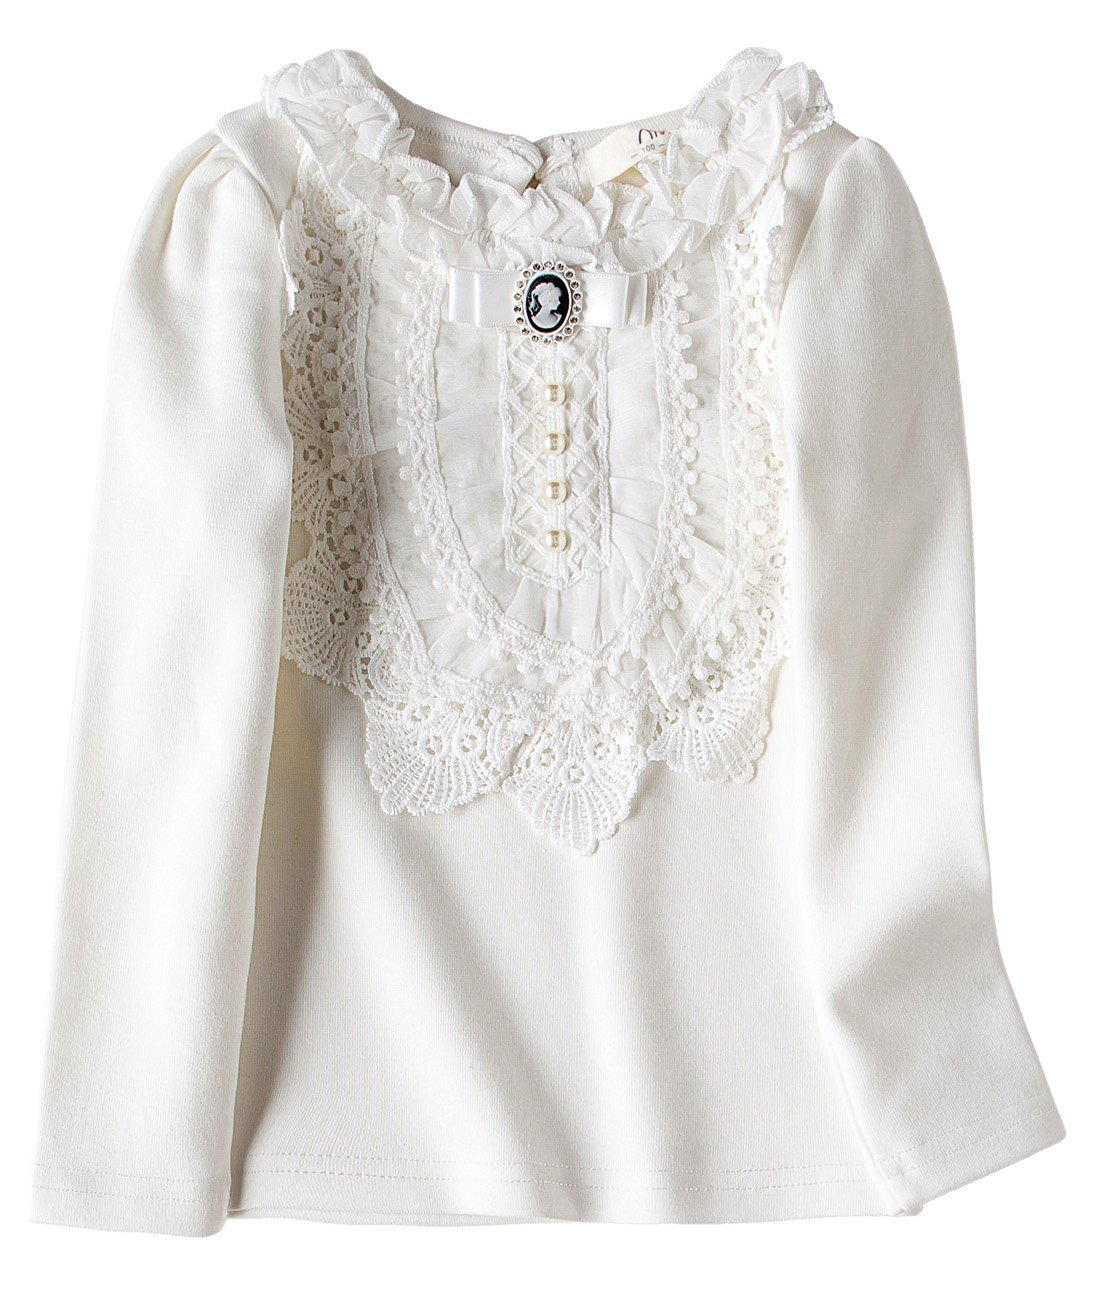 VYU Little Girls Long Sleeve Winter Blouse 2-8 Year Kids Cotton Lace Tops by VYU